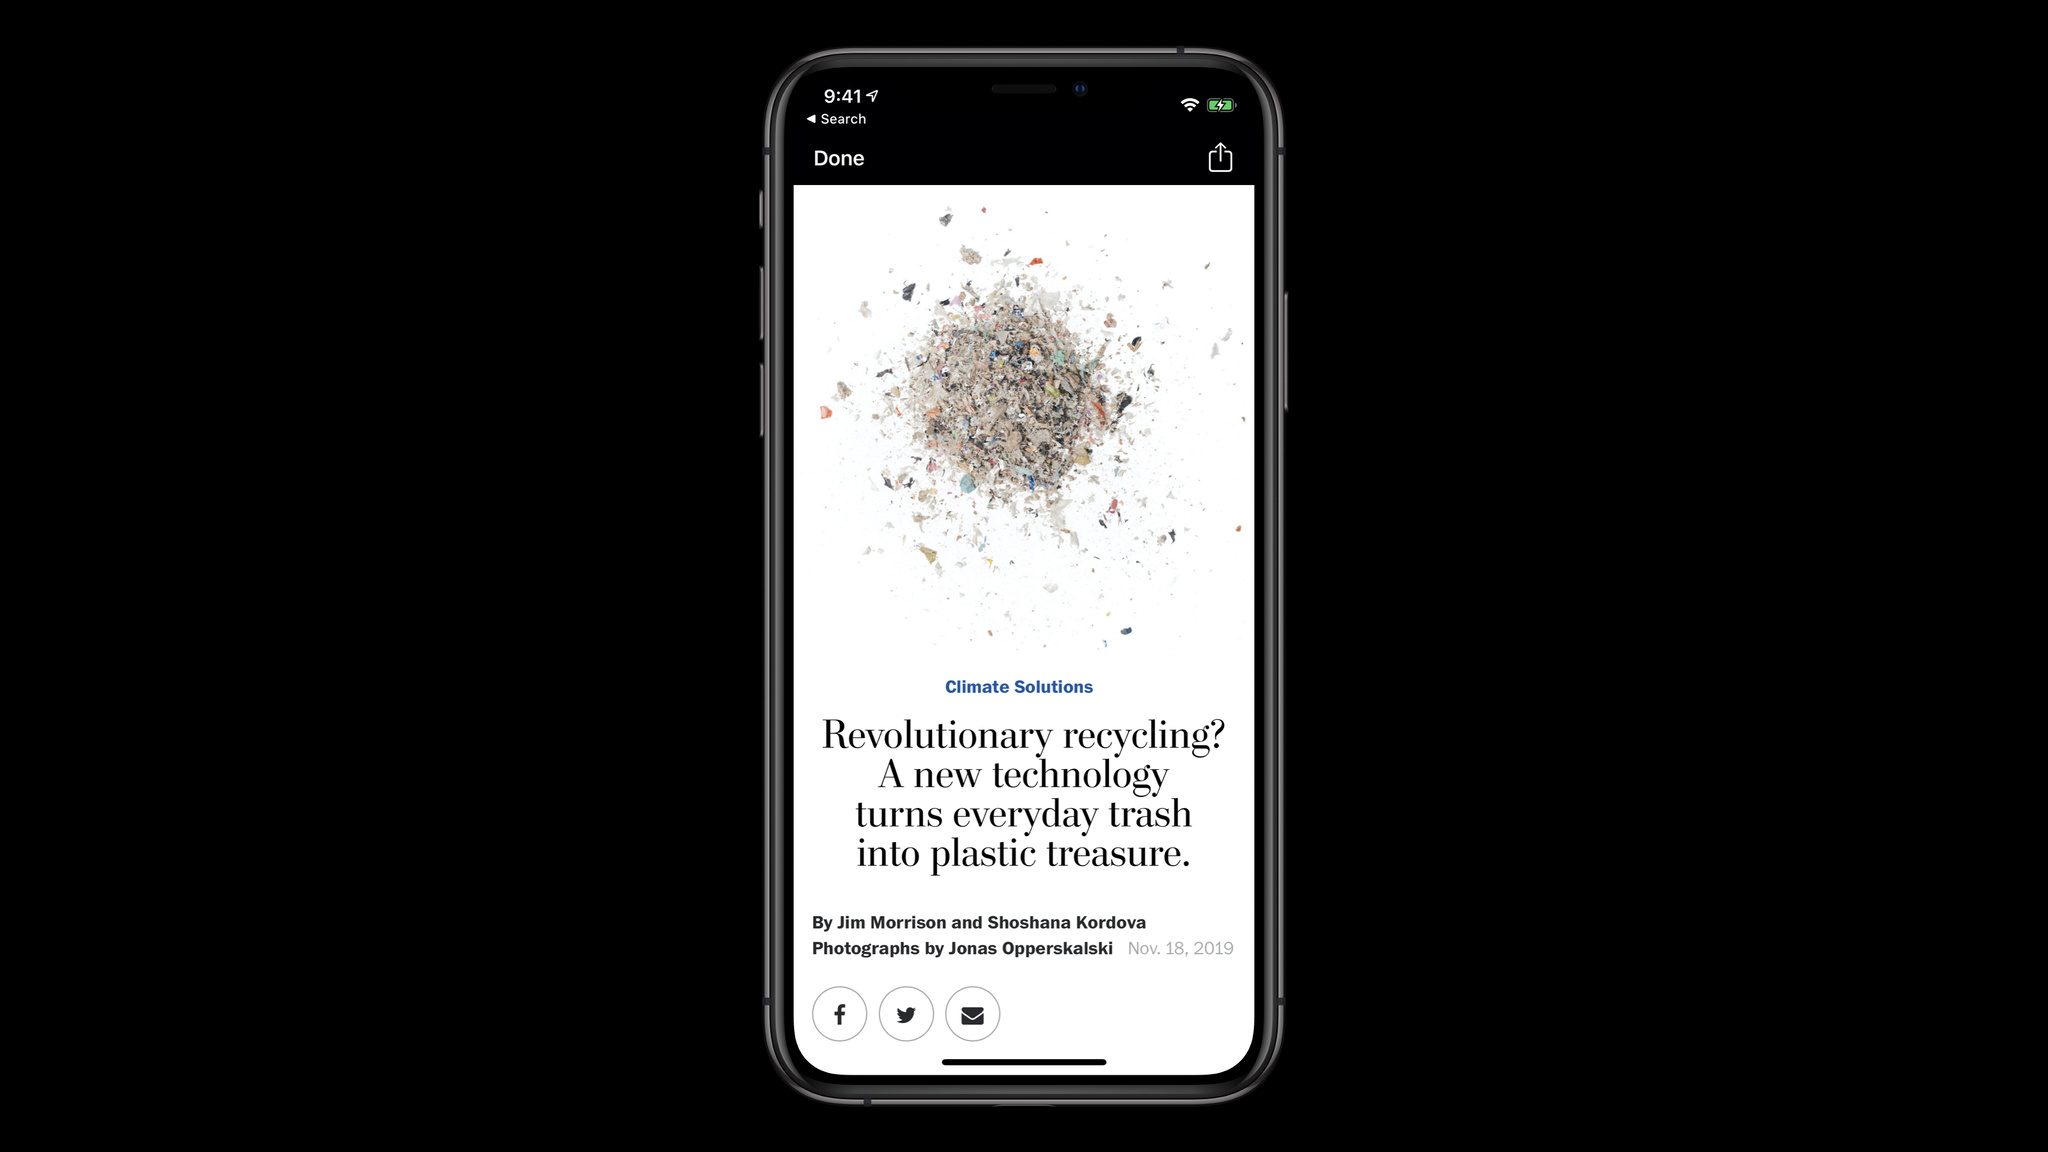 The Washington Post's development team implemented WKWebView to display content from the Washington Post website within their app.